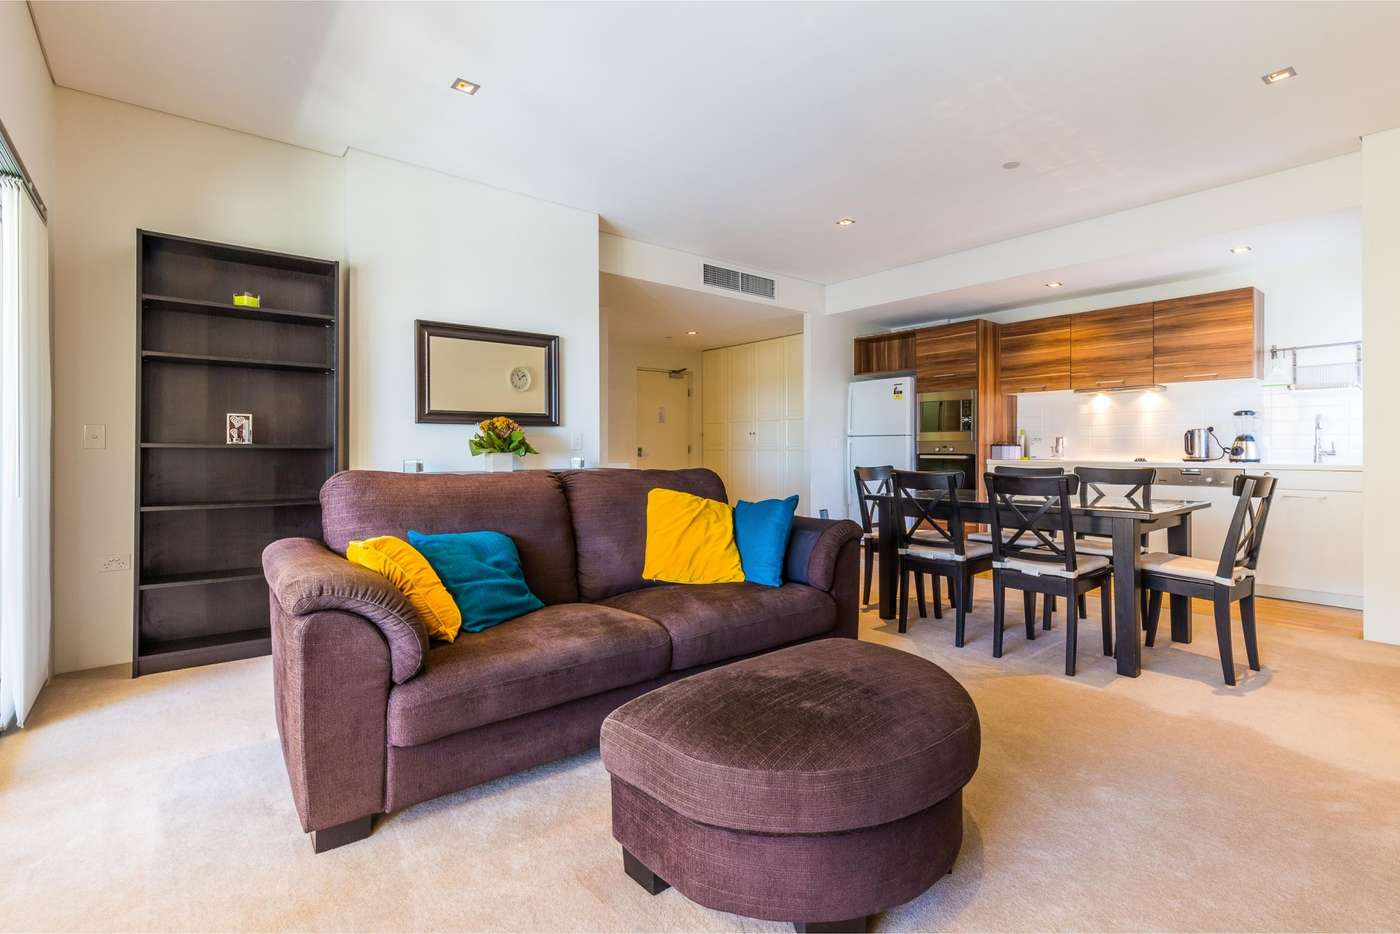 Main view of Homely apartment listing, 704/237 Adelaide Terrace, Perth WA 6000